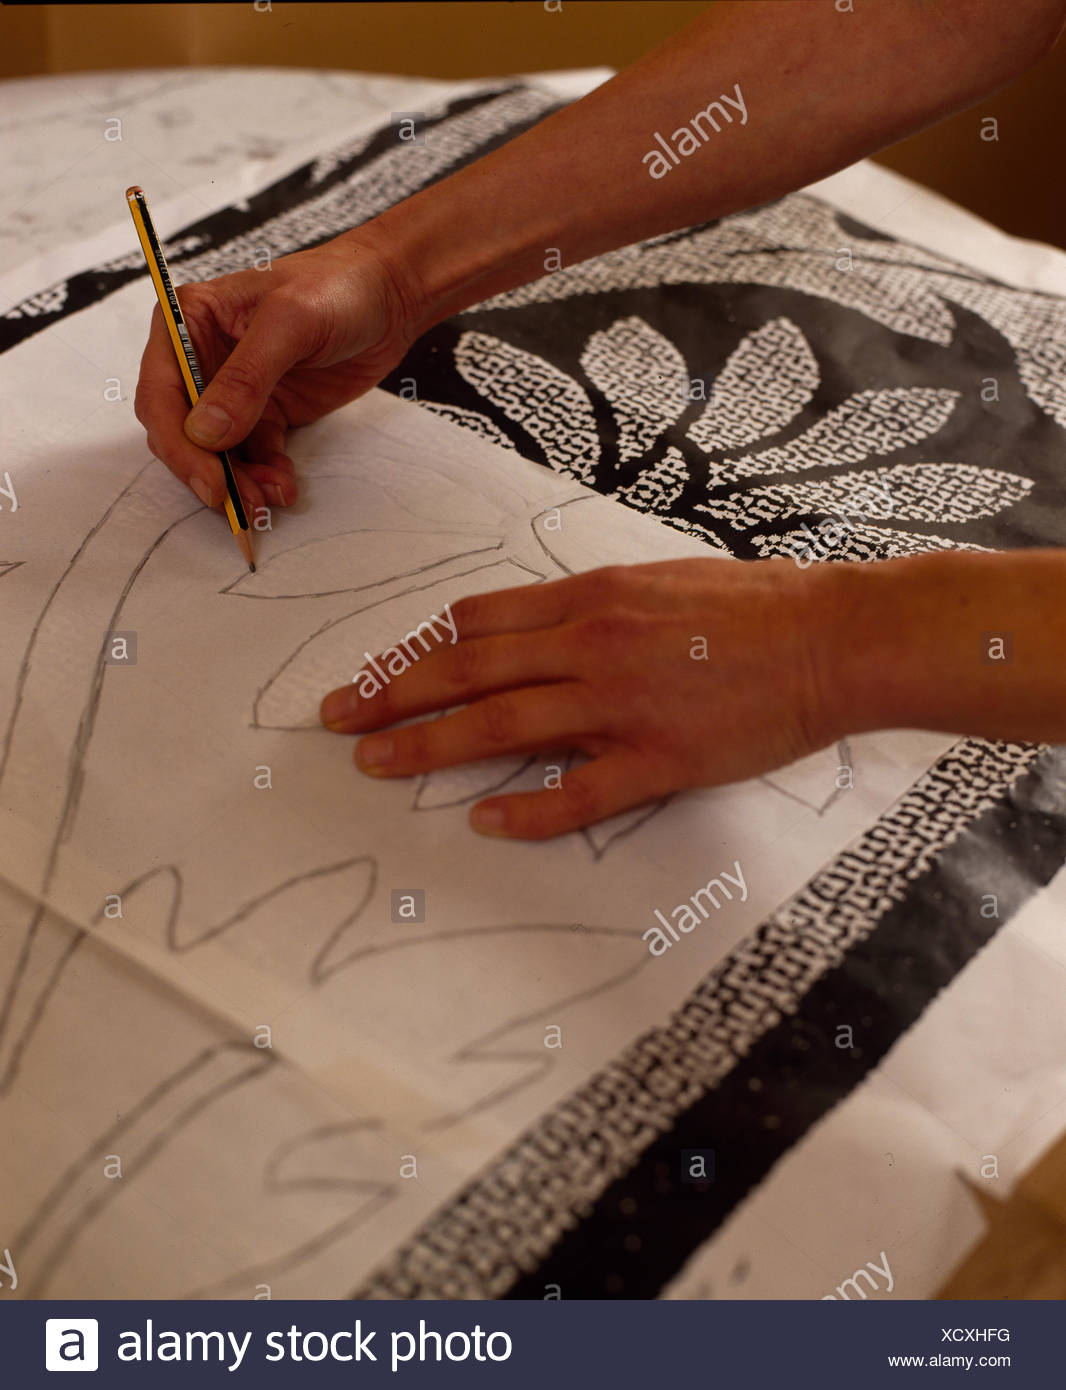 Close-up of hands tracing pattern - Stock Image